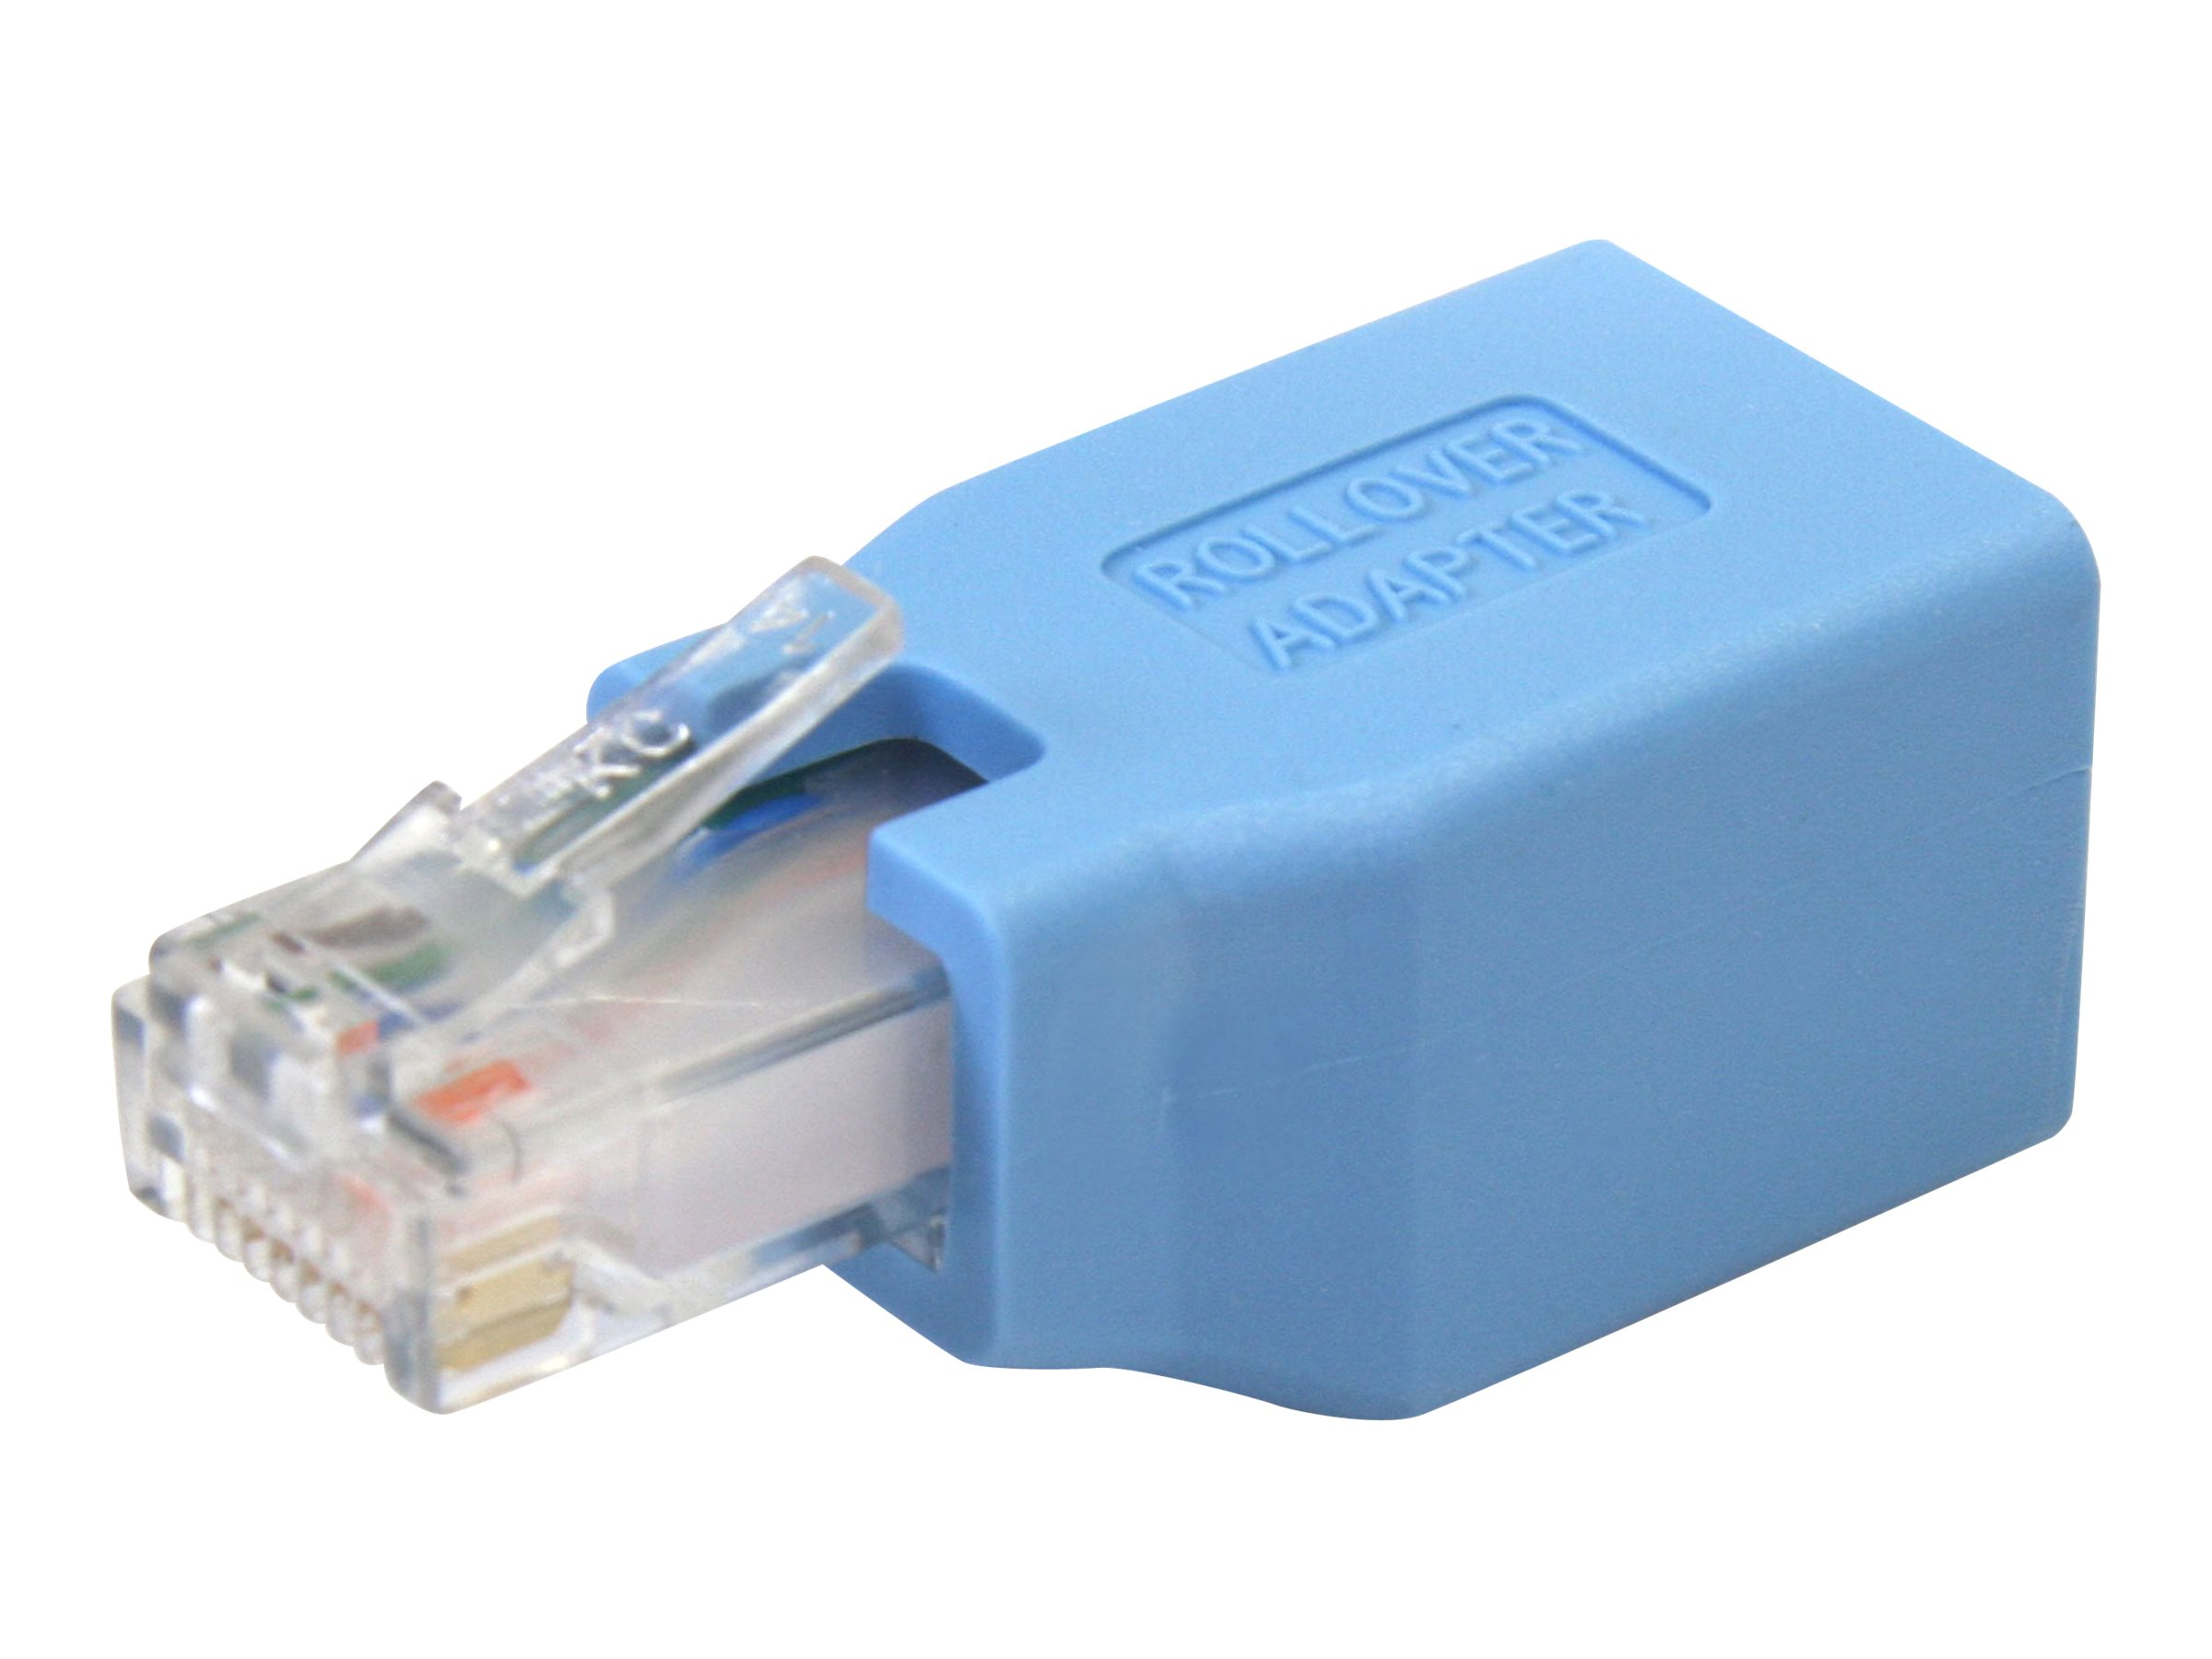 StarTech.com Rolloever Adapter for RJ-45 Ethernet Cable (M-F)